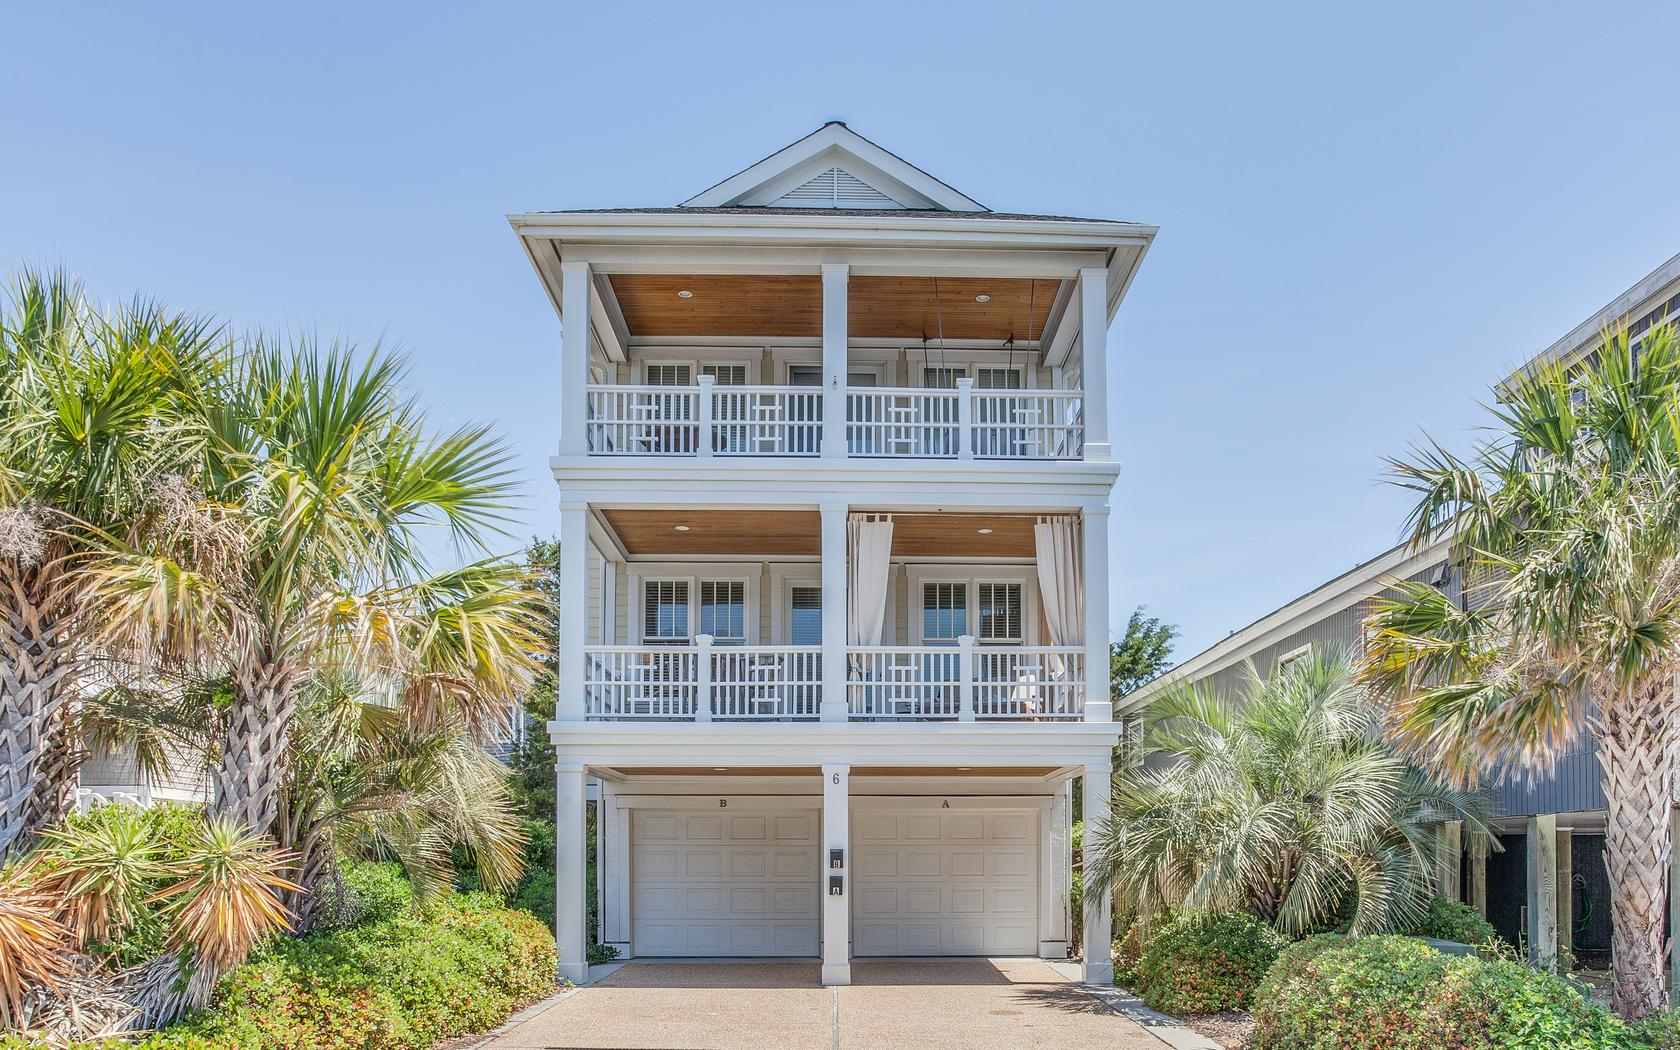 wrightsville beach real estate photos.jpg